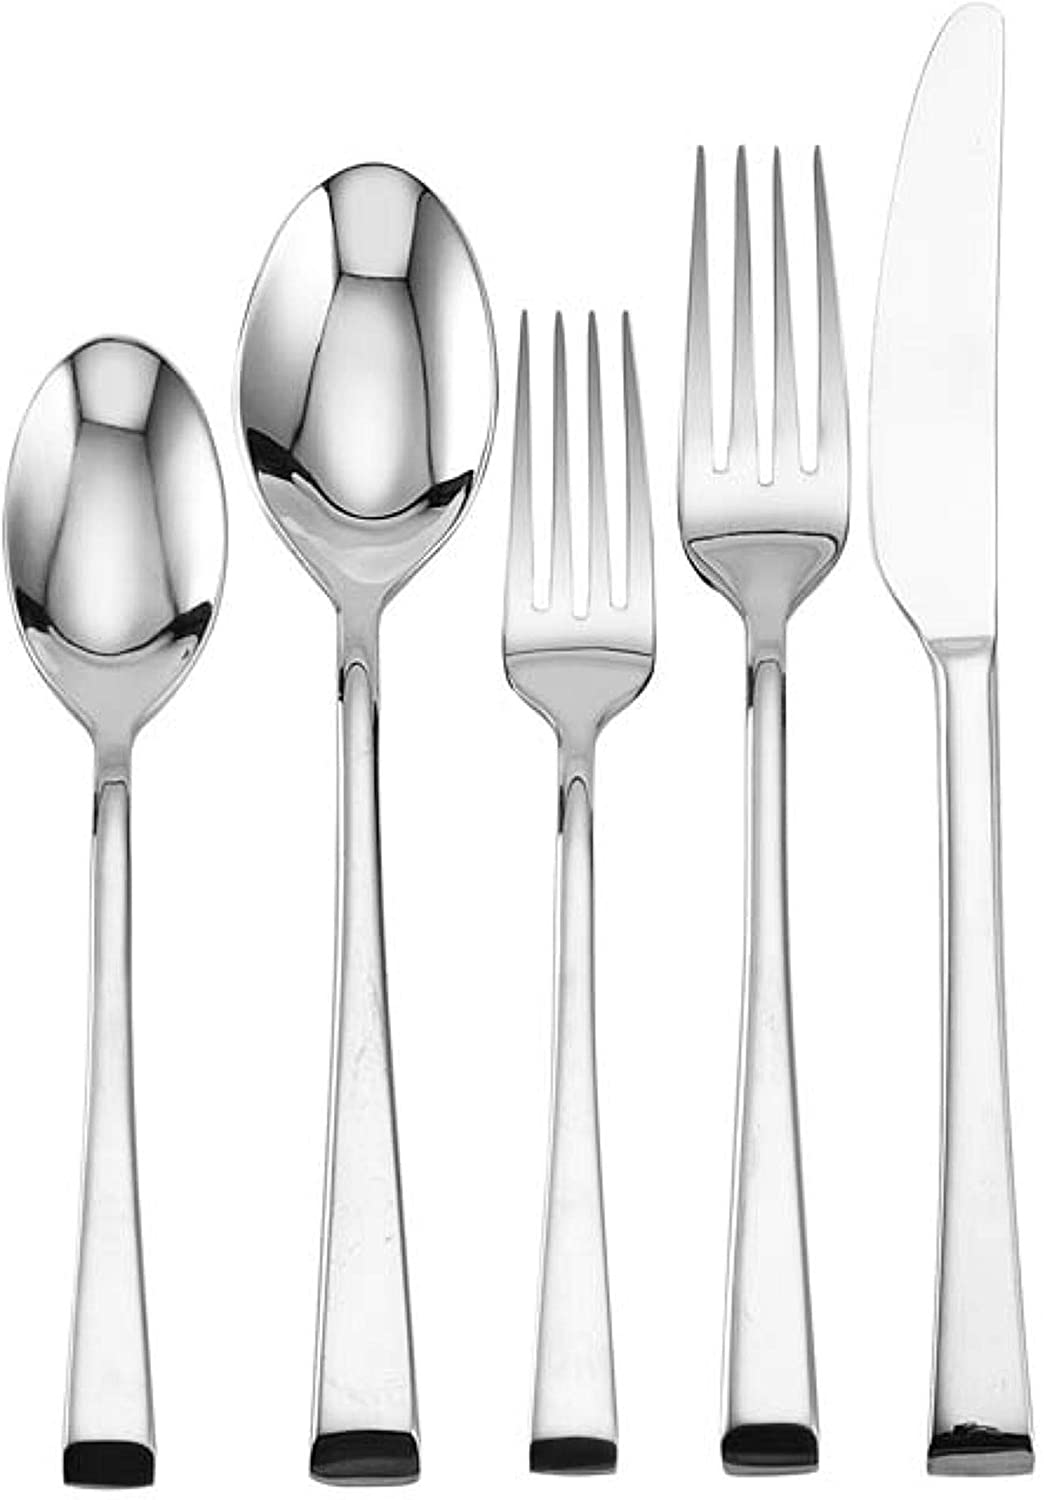 Mikasa Rockford 20 Piece 18 10 Stainless Steel Flatware Set Service For 4 Silver Flatware Sets